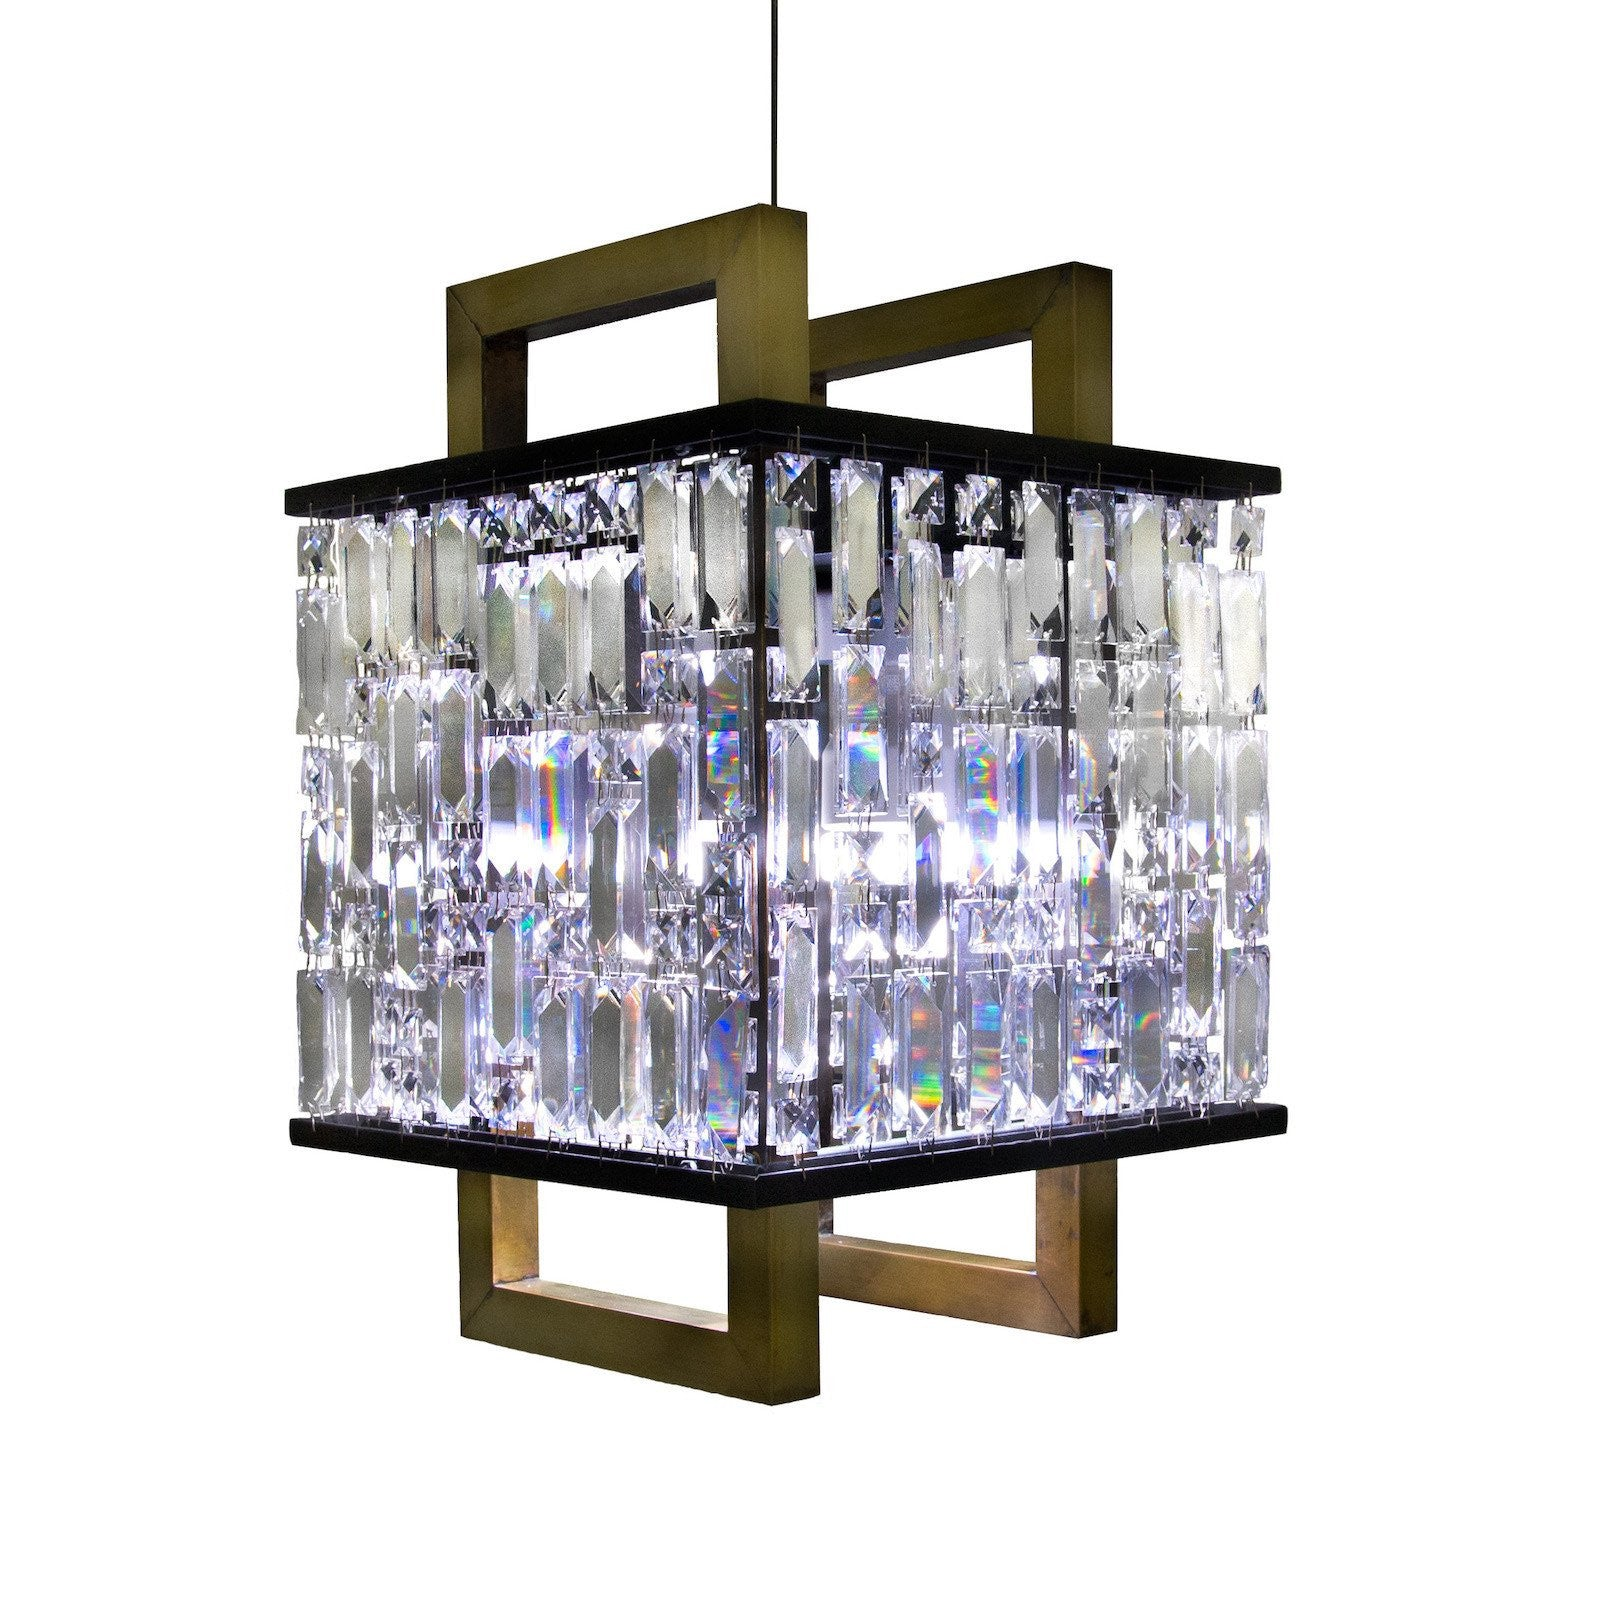 Bushwick Lantern Smart Home Chandelier Pendant